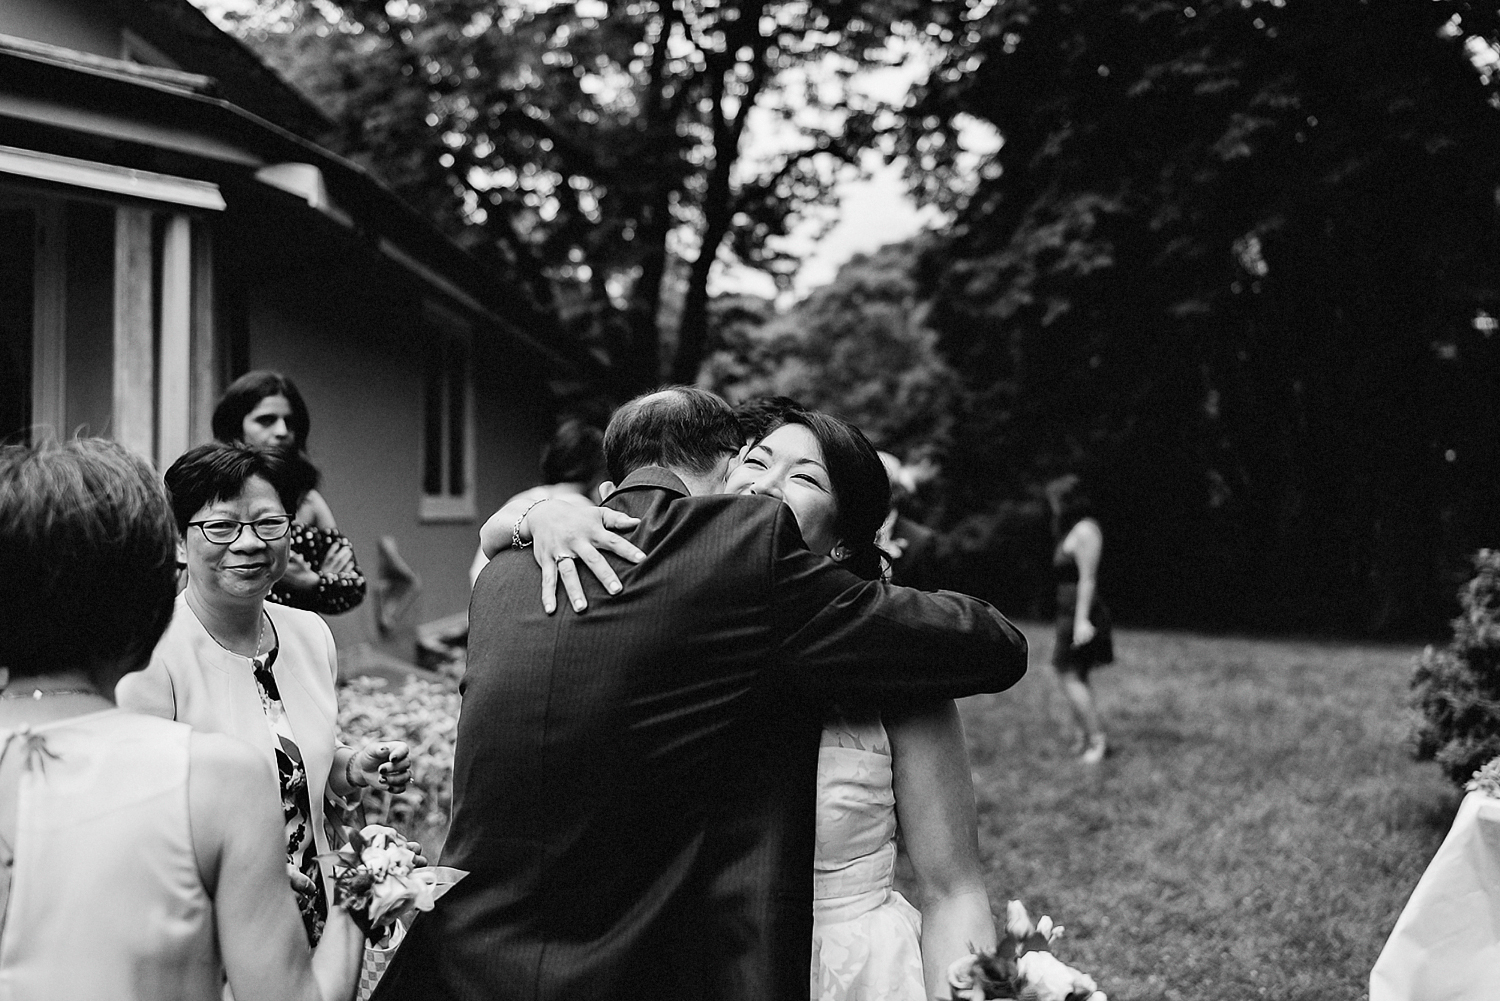 Outdoor-Forest-Ceremony-in-Toronto-Best-Wedding-Photographer-GTA-Ontario-Canada-Candid-Natural-intimate-vintage-film-analog-wedding-photography-Bride-Hugging-Father.jpg